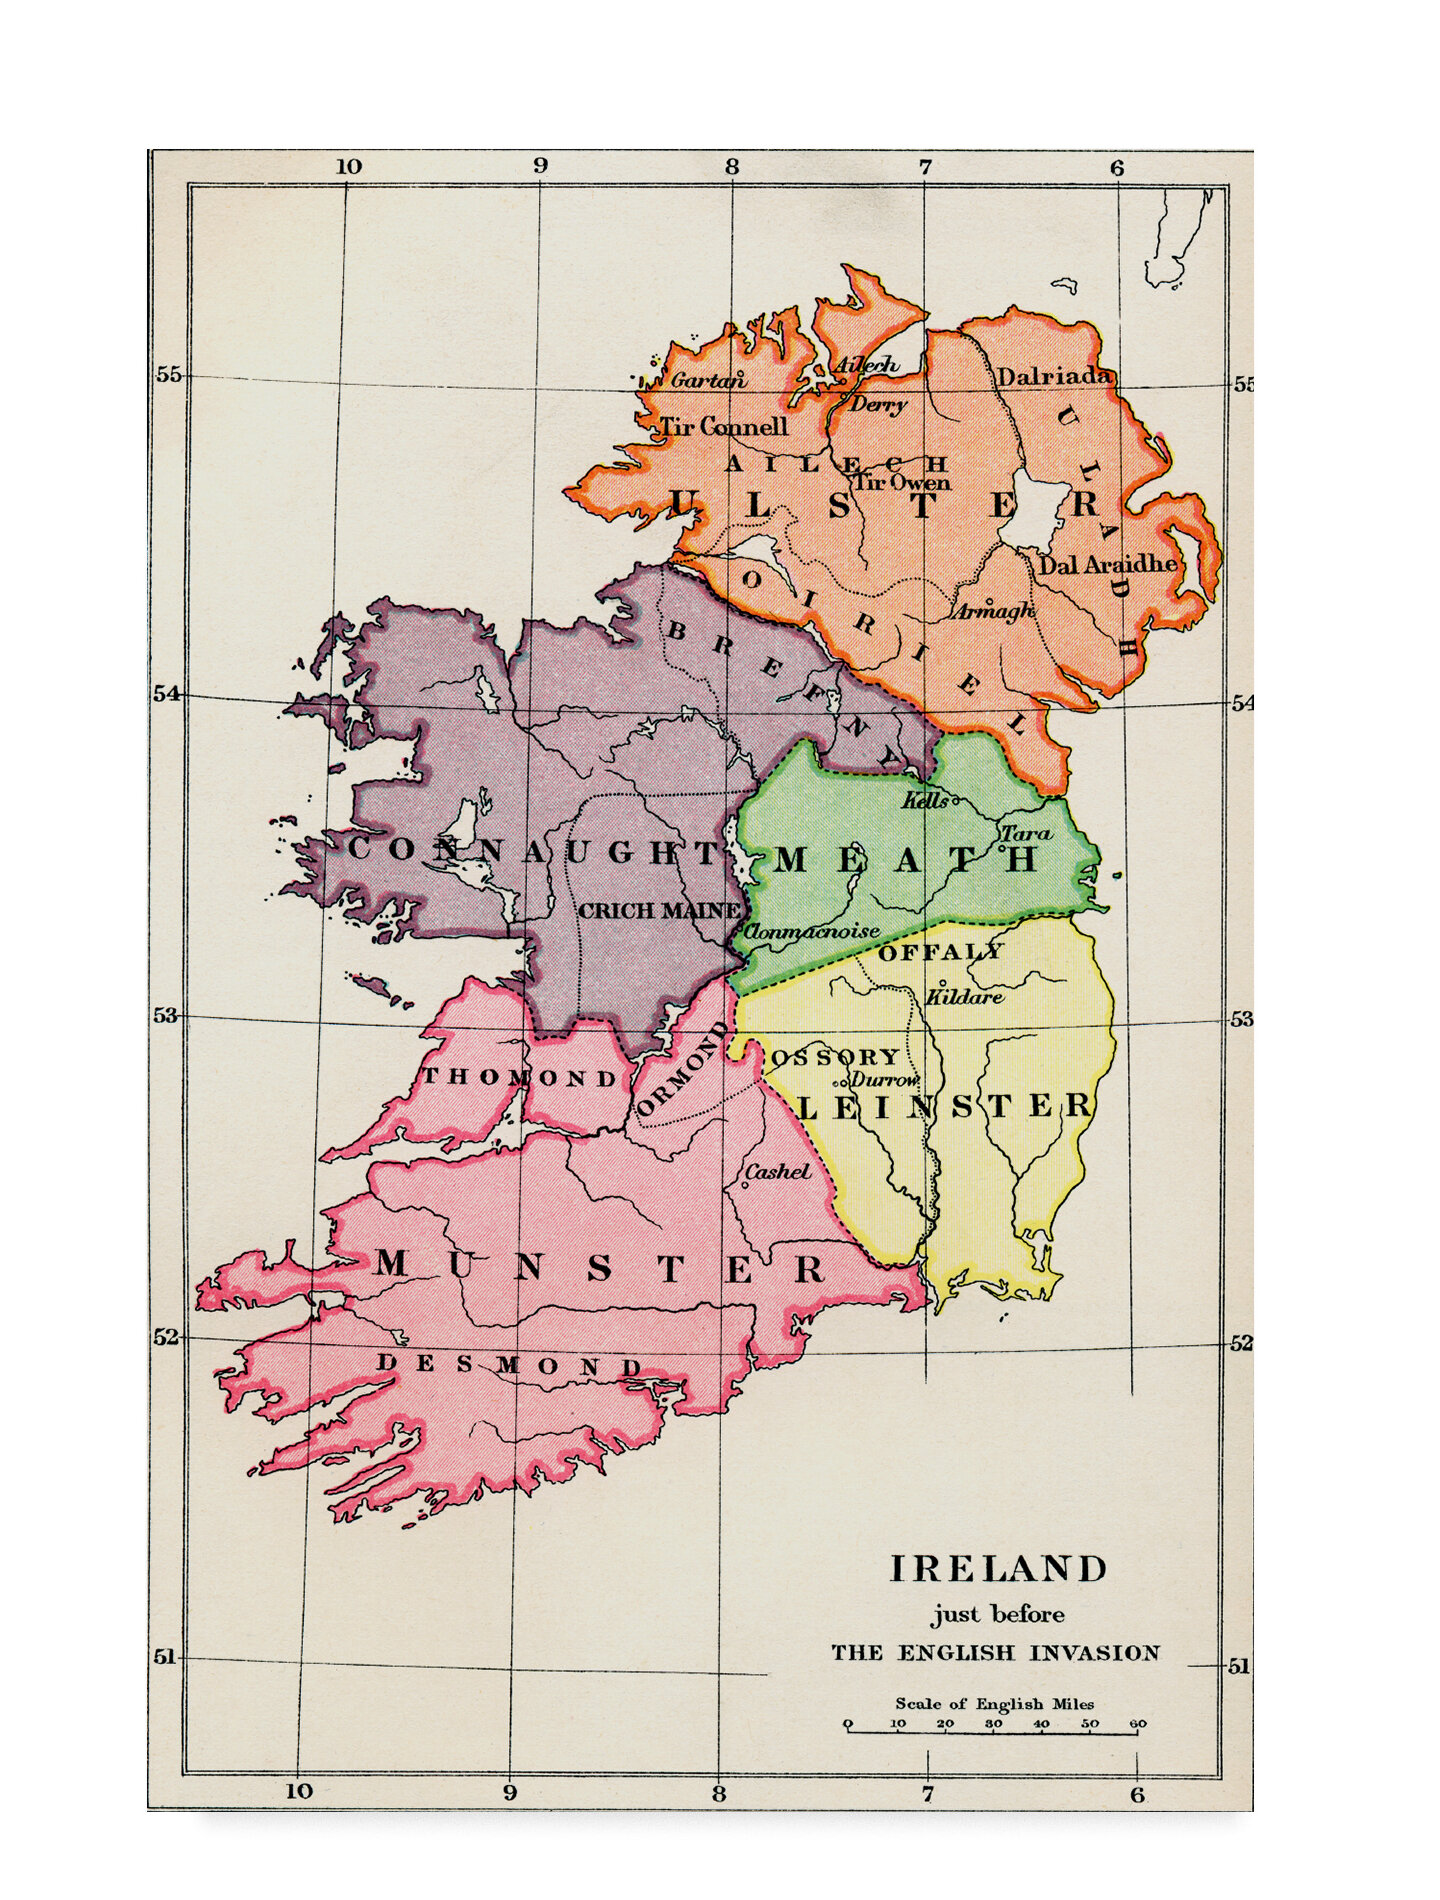 Map Of Ireland Drawing.Charlton Home Map Of Ireland 1588 To 1610 Drawing Print On